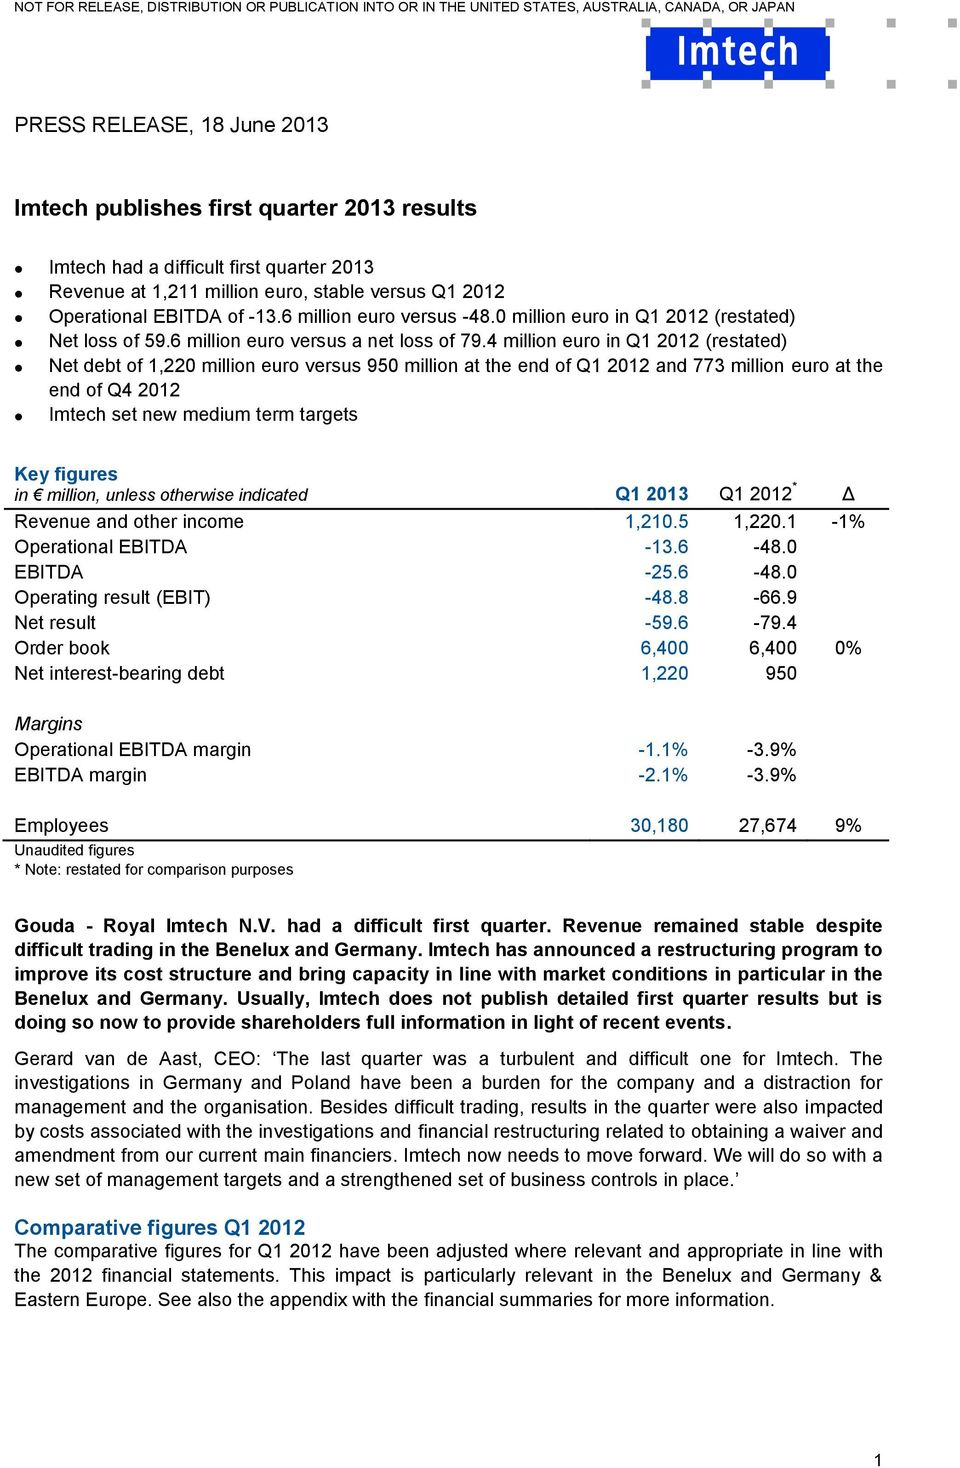 4 million euro in Q1 2012 (restated) Net debt of 1,220 million euro versus 950 million at the end of Q1 2012 and 773 million euro at the end of Q4 2012 Imtech set new medium term targets Key figures